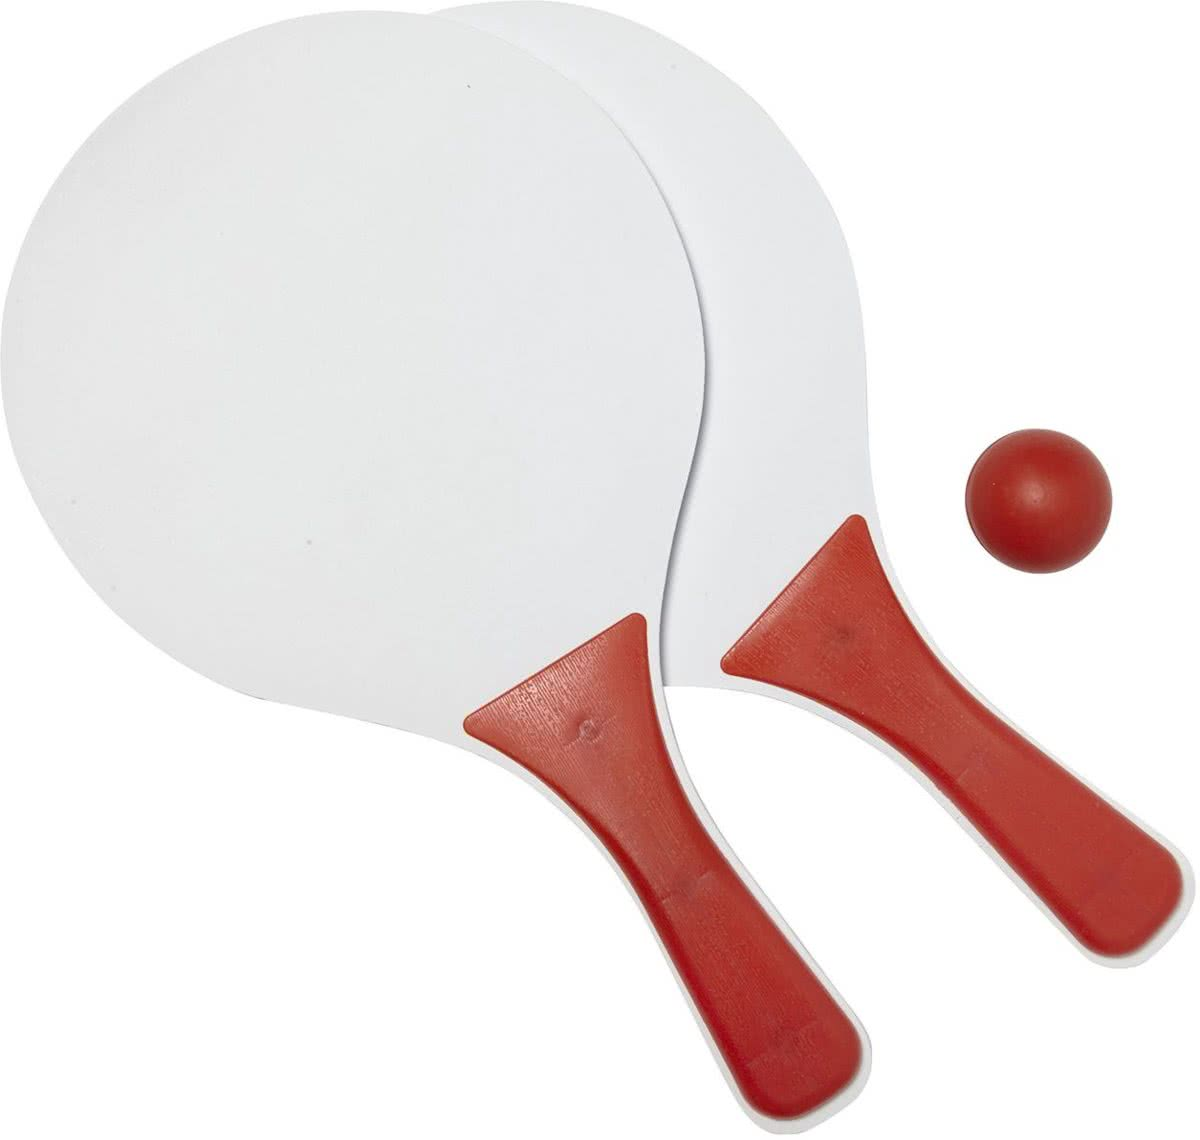 Beachball set - Rood-Wit - 37.5x23.5cm - Strandbal tennis